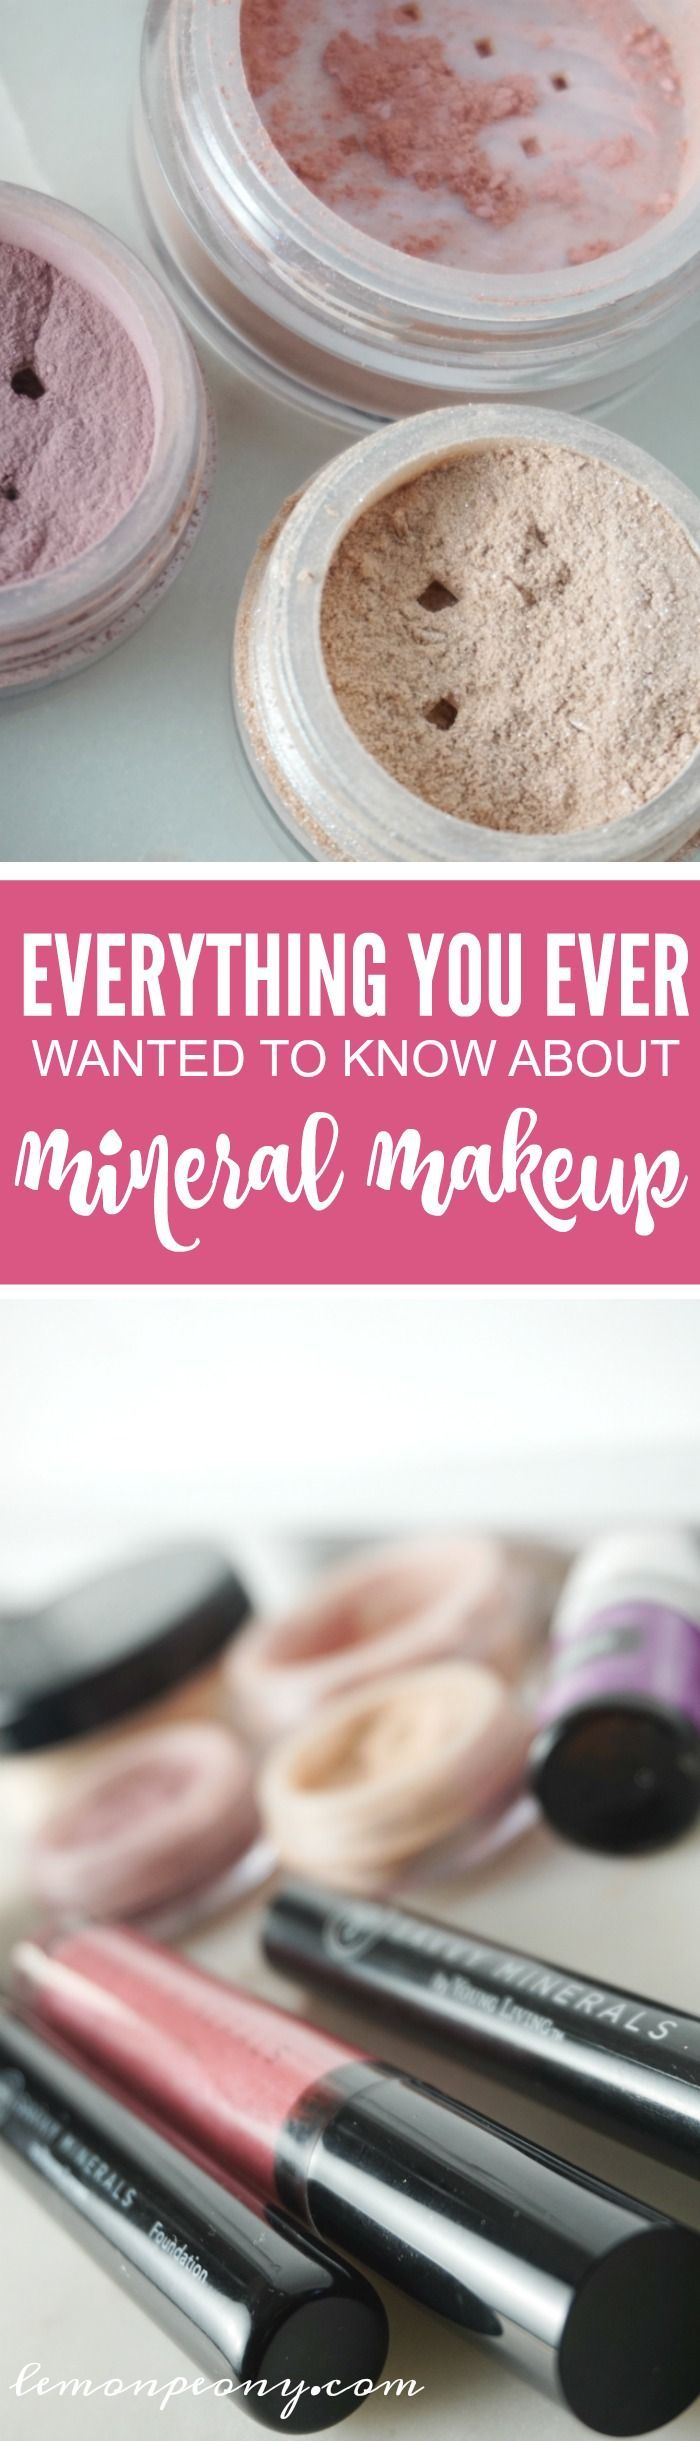 Everything You Ever Wanted to Know about Mineral Makeup